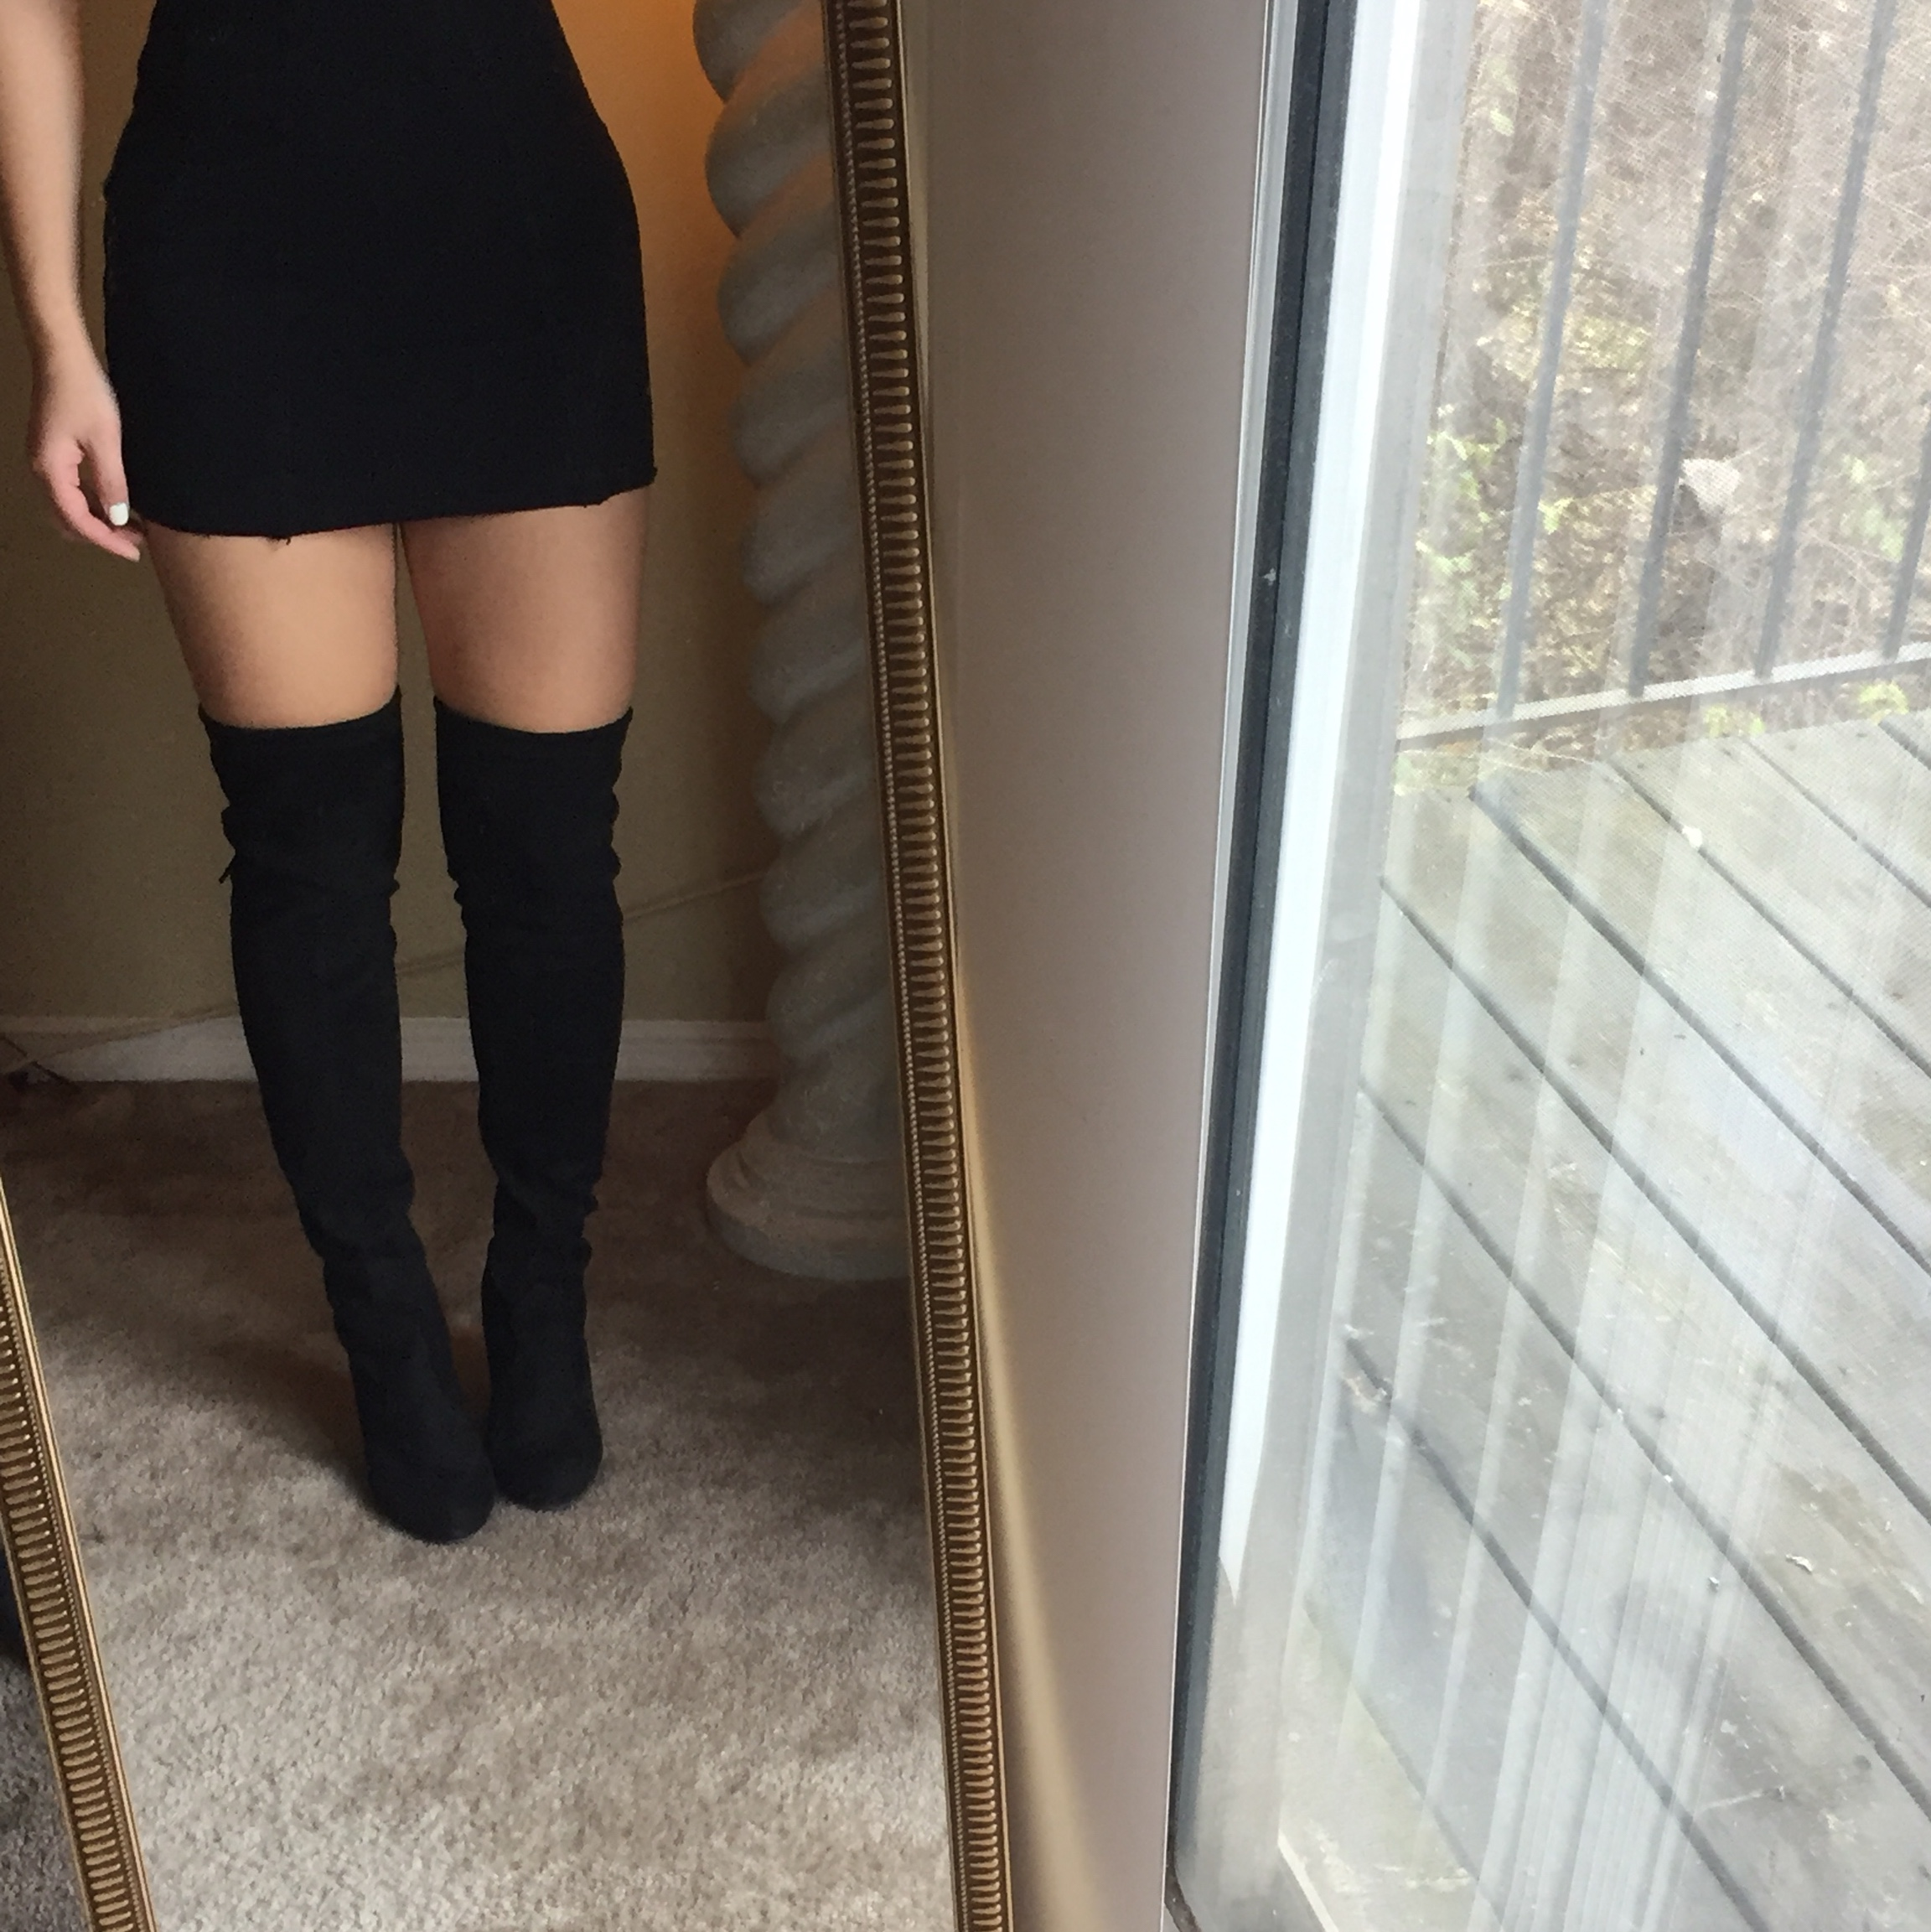 Religioso Móvil Canal  STEVE MADDEN GORGEOUS Over the knee boots in size... - Depop